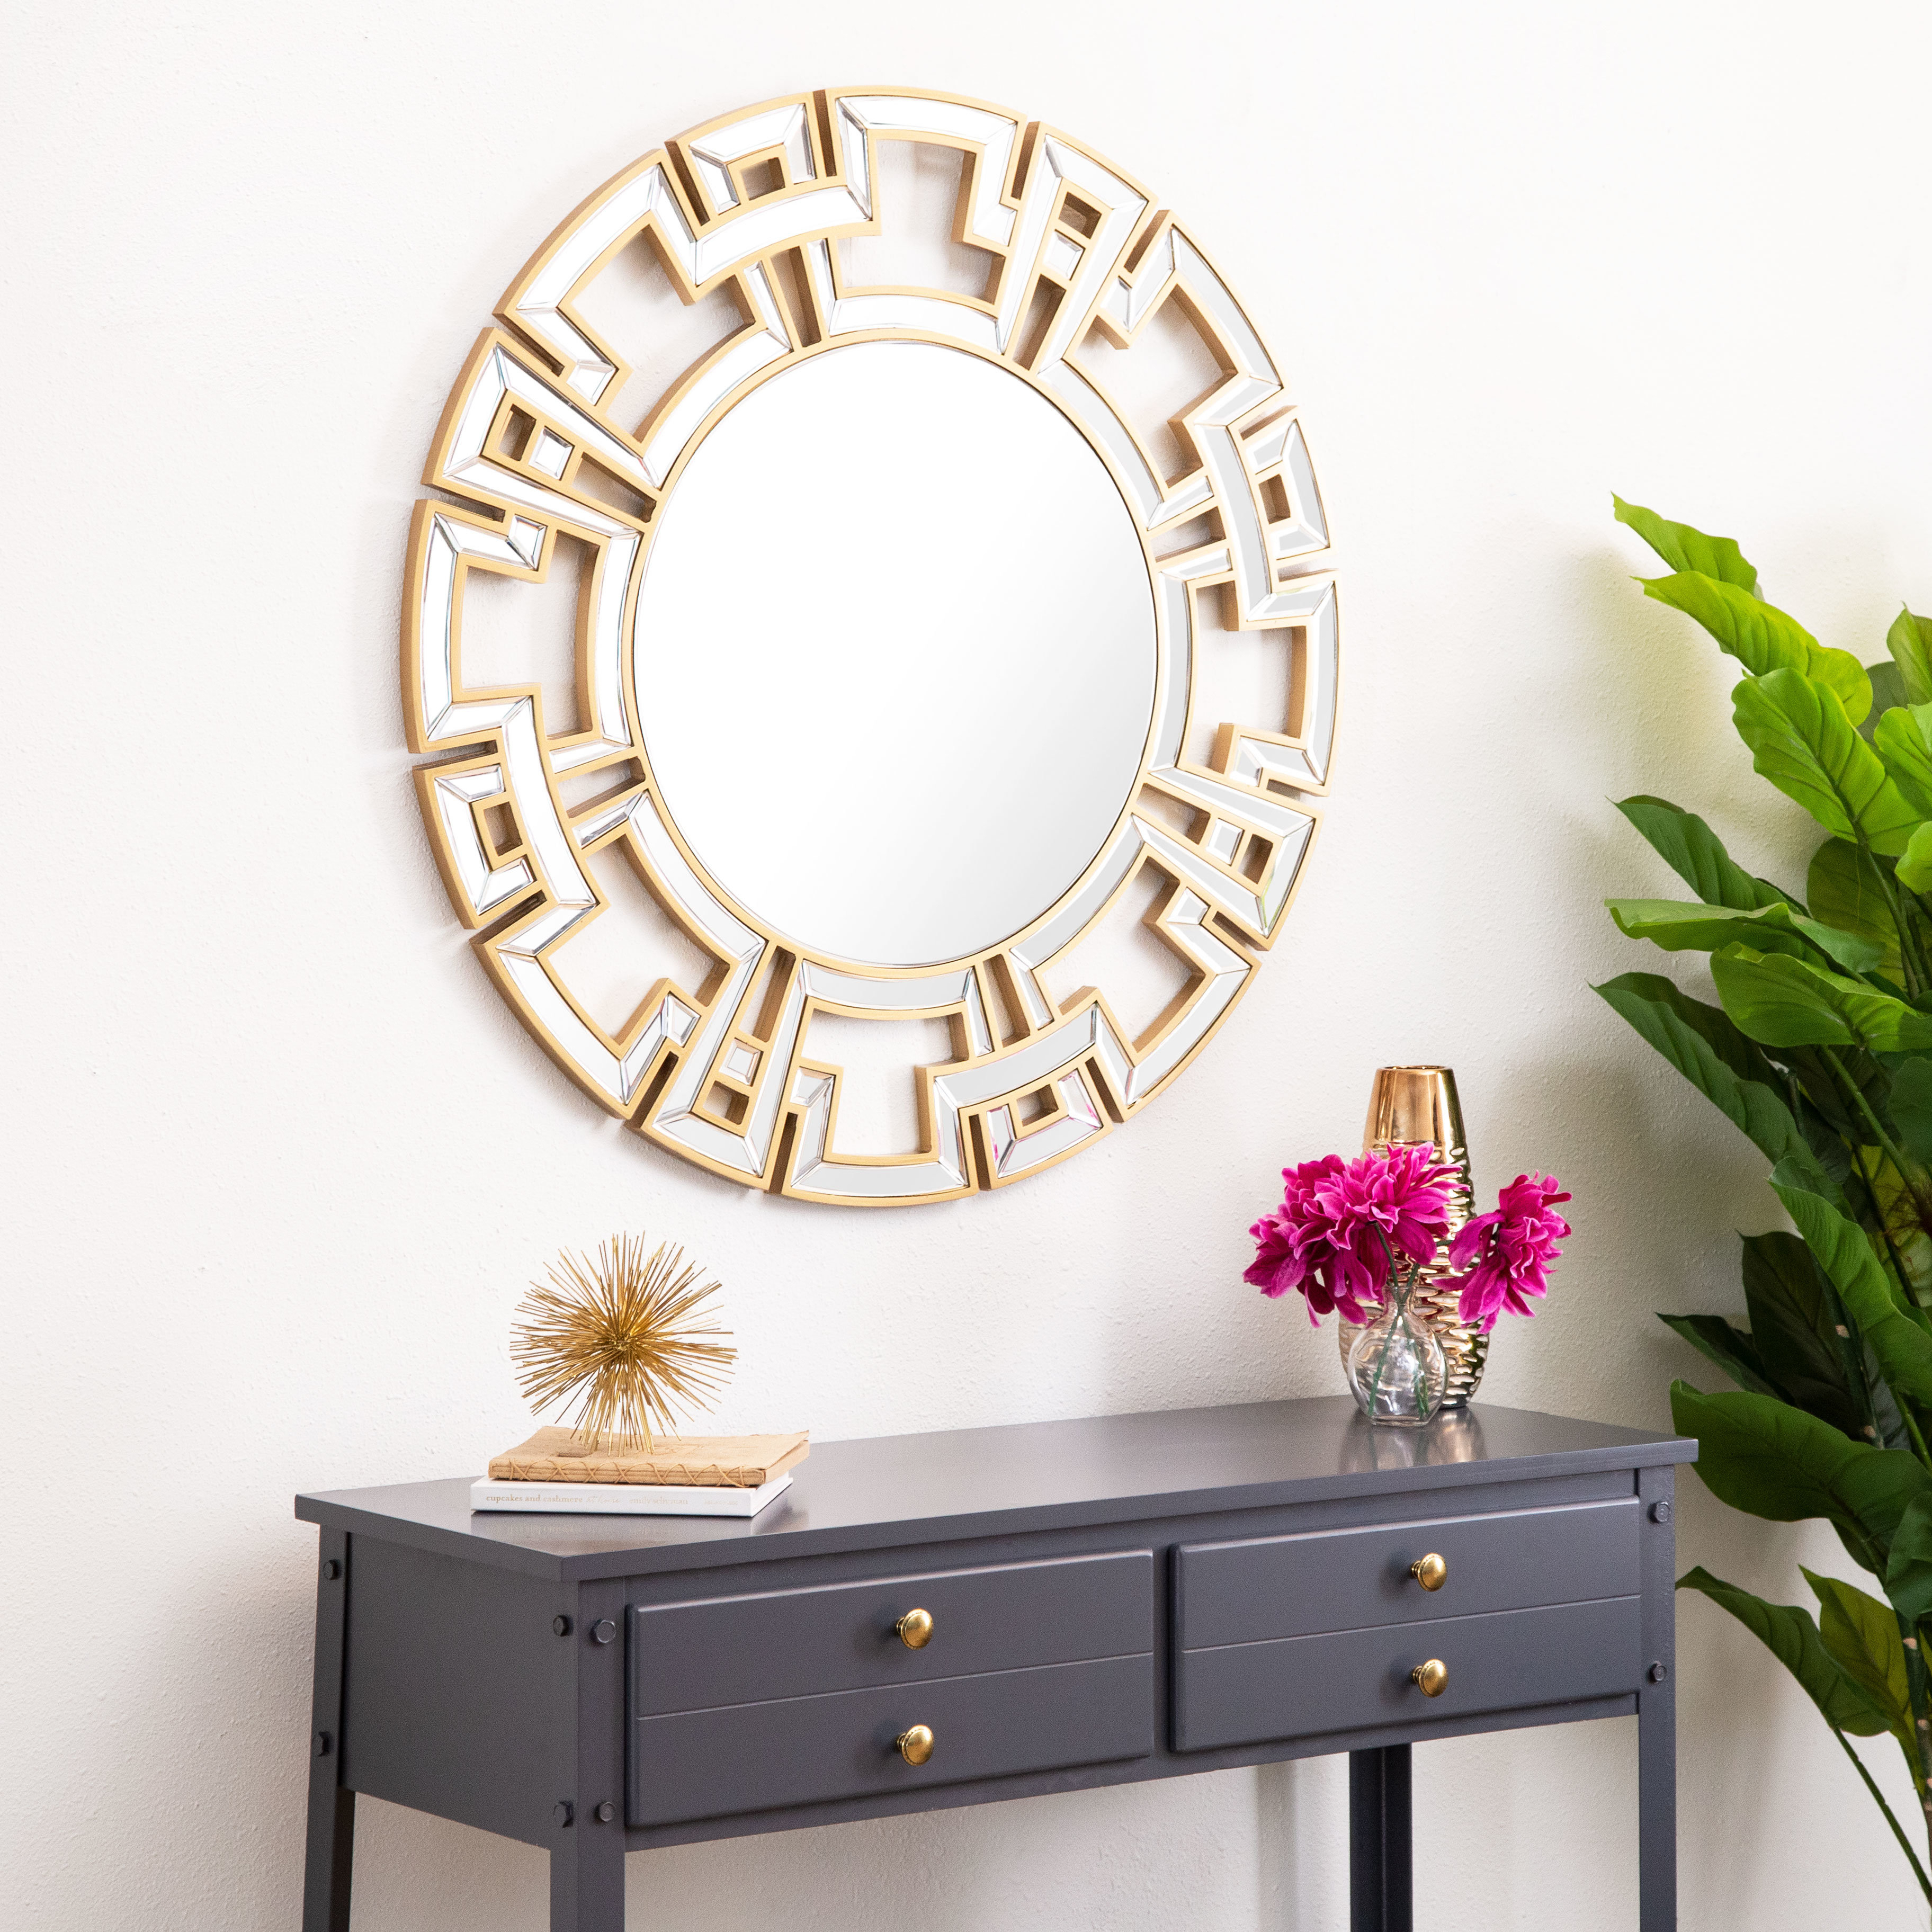 Modern & Contemporary Kentwood Round Wall Mirror | Allmodern within Kentwood Round Wall Mirrors (Image 16 of 30)